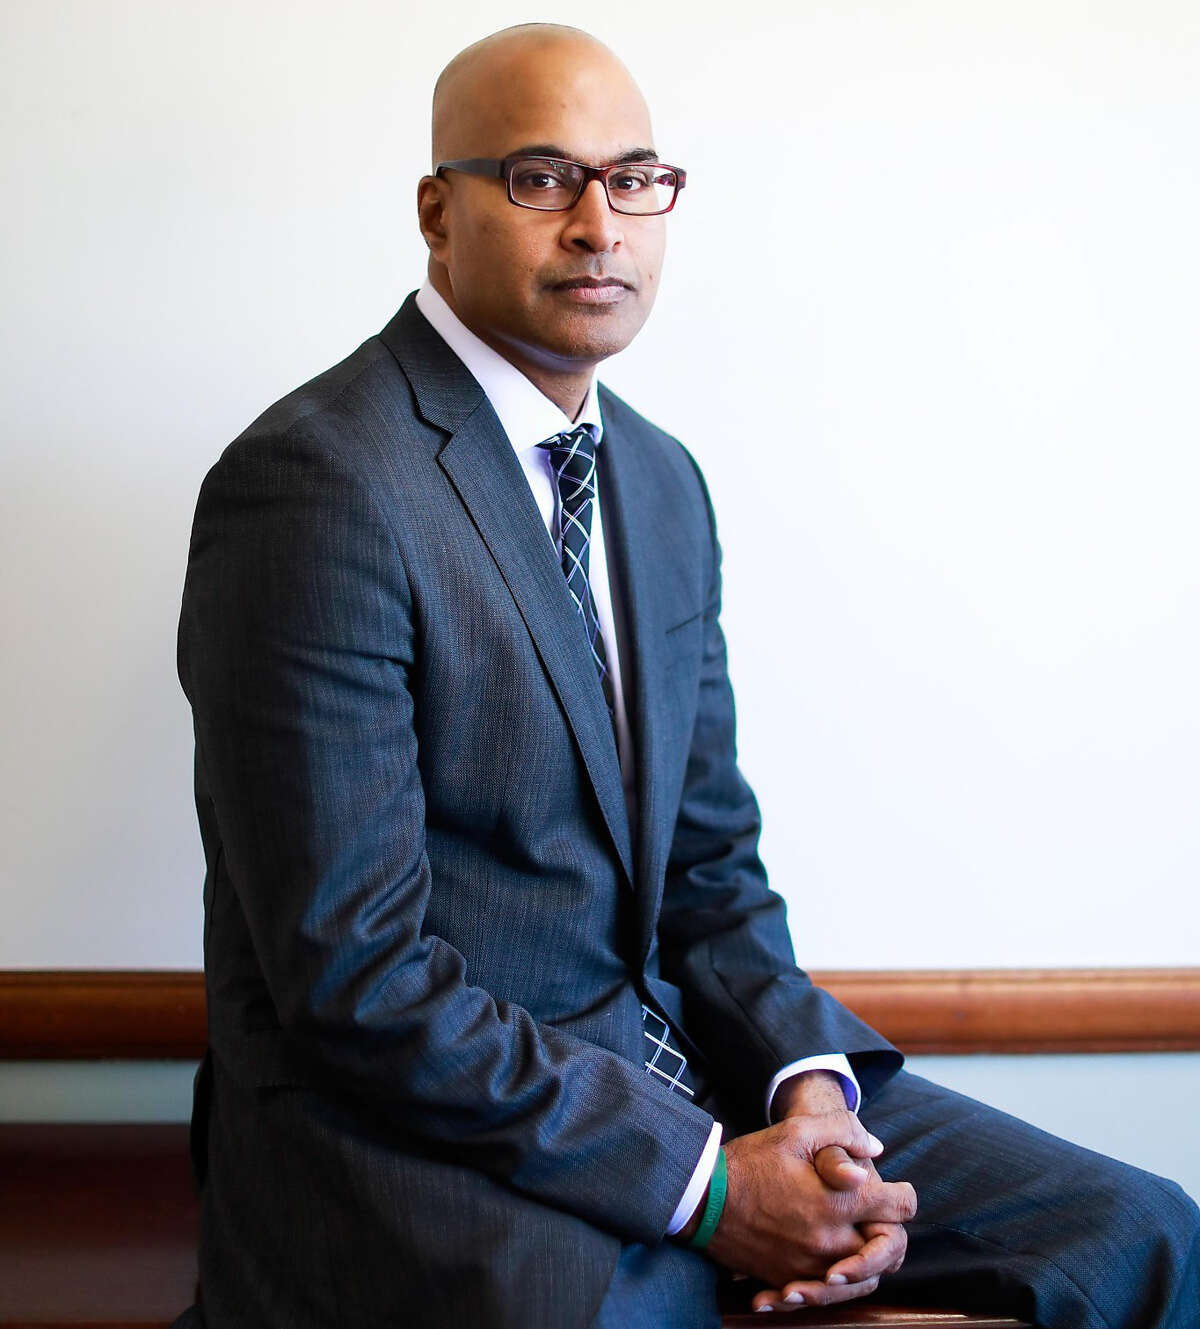 Newly appointed Public Defender Mano Raju is settling into the office of predecessor Jeff Adachi.